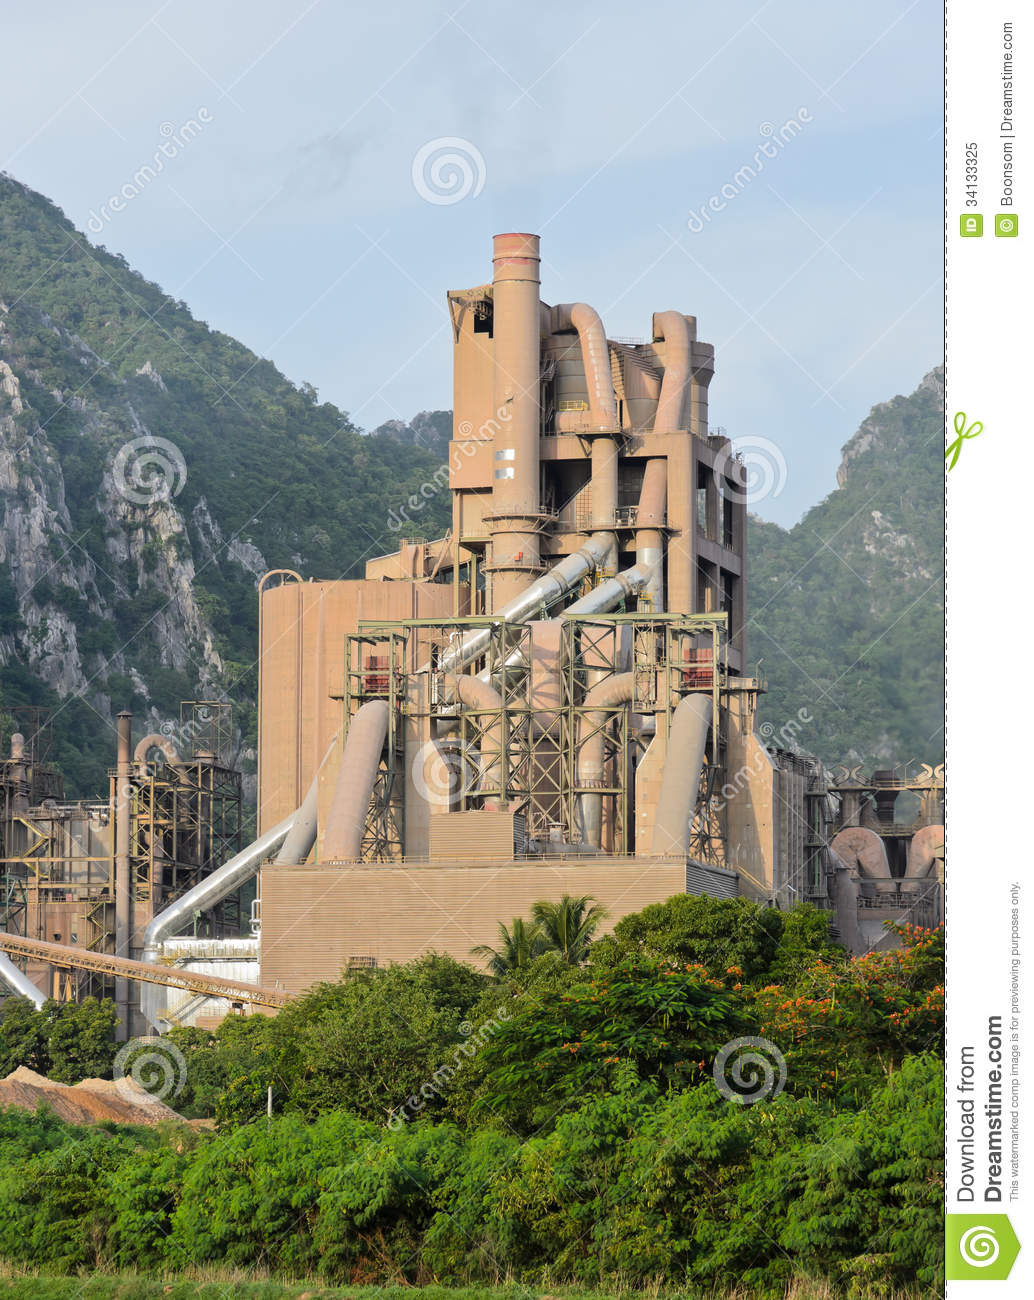 Idaho Cement Plants : Cement plant royalty free stock photo image